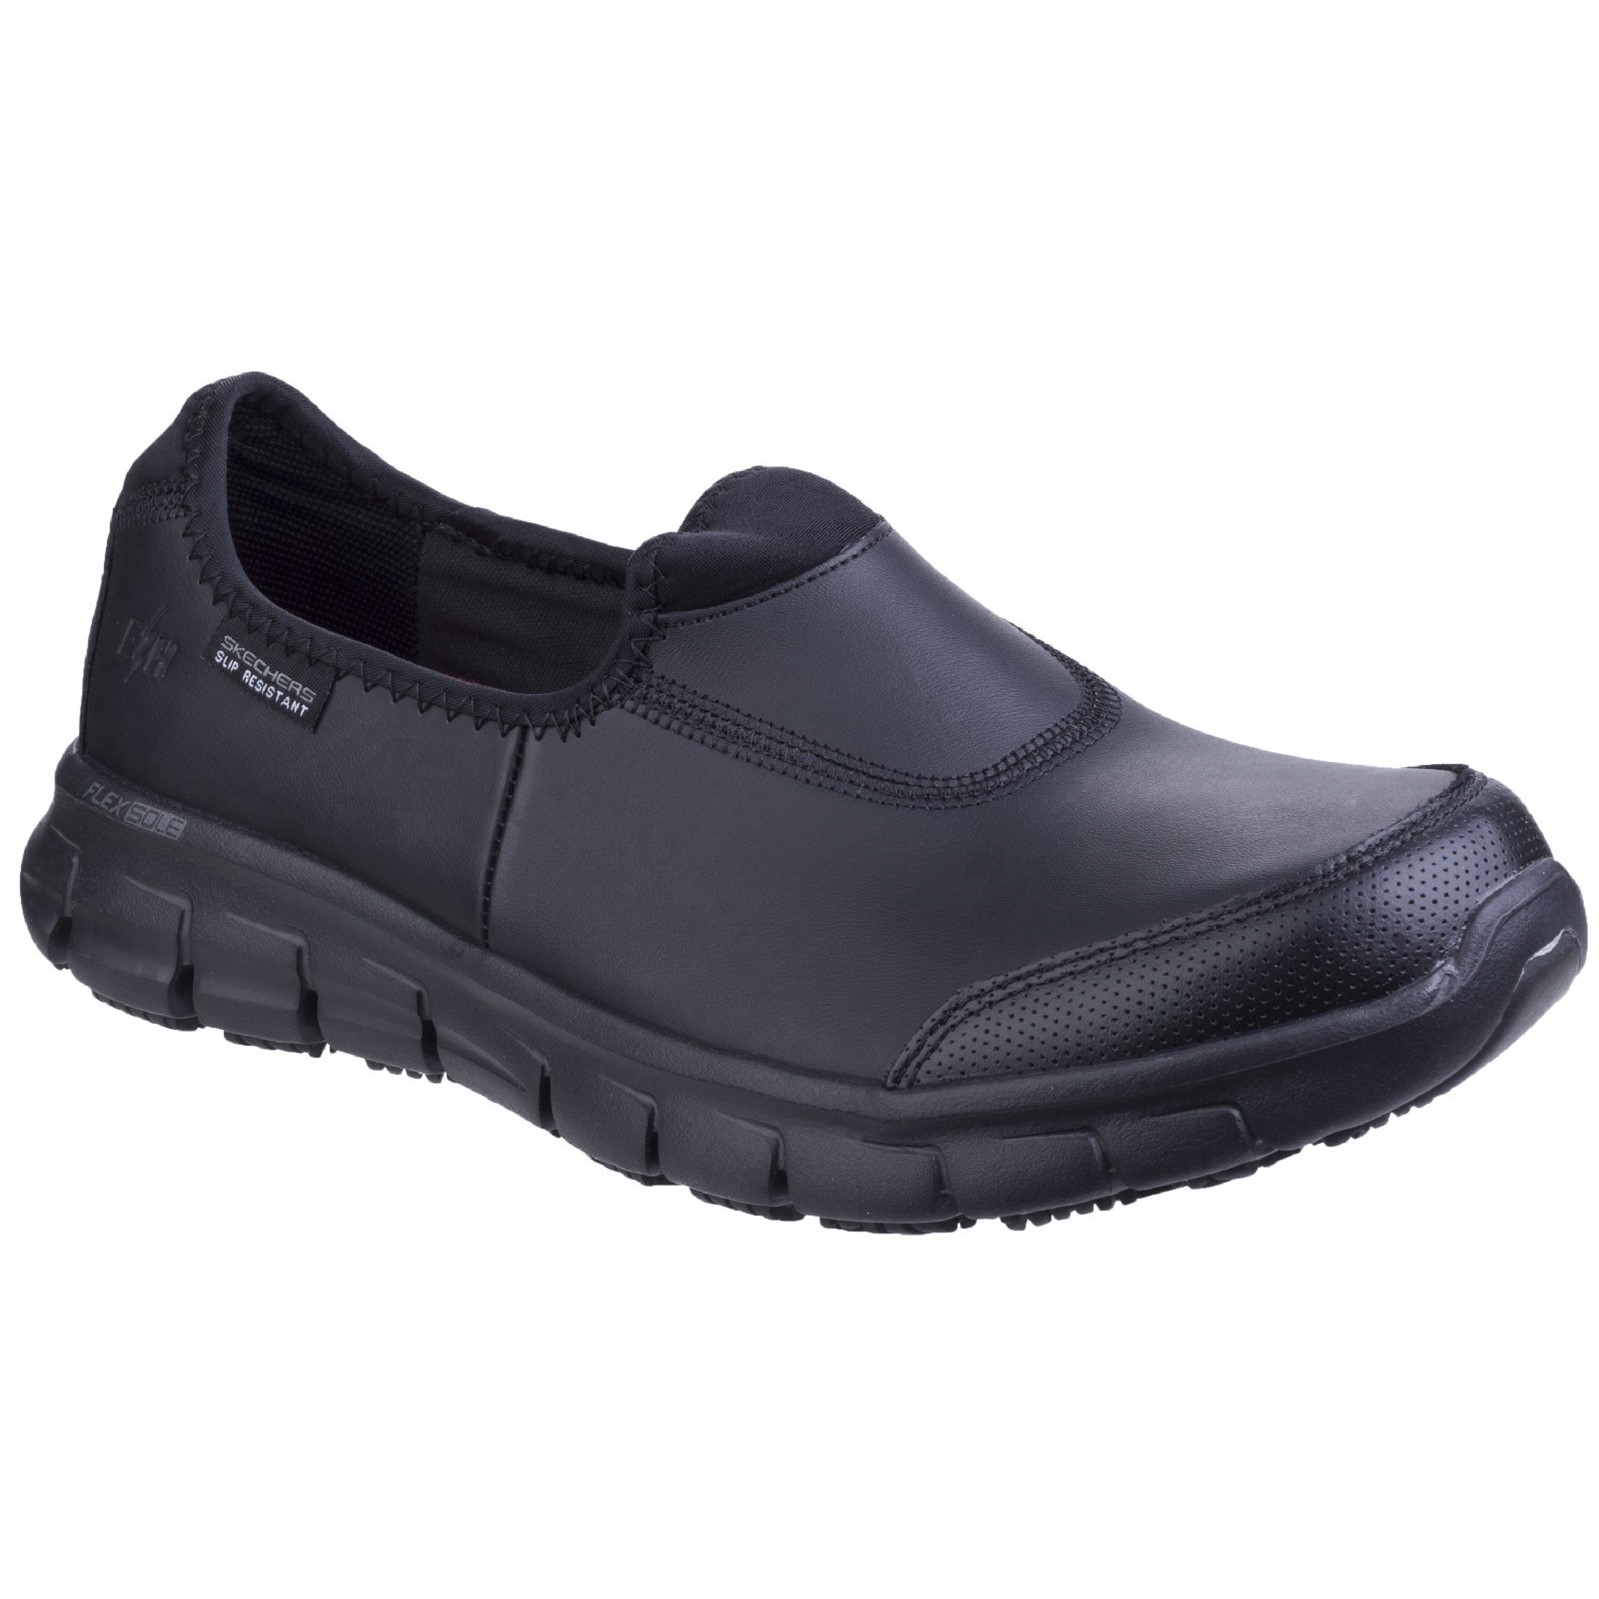 Mens Slip On Memory Foam Dress Shoes